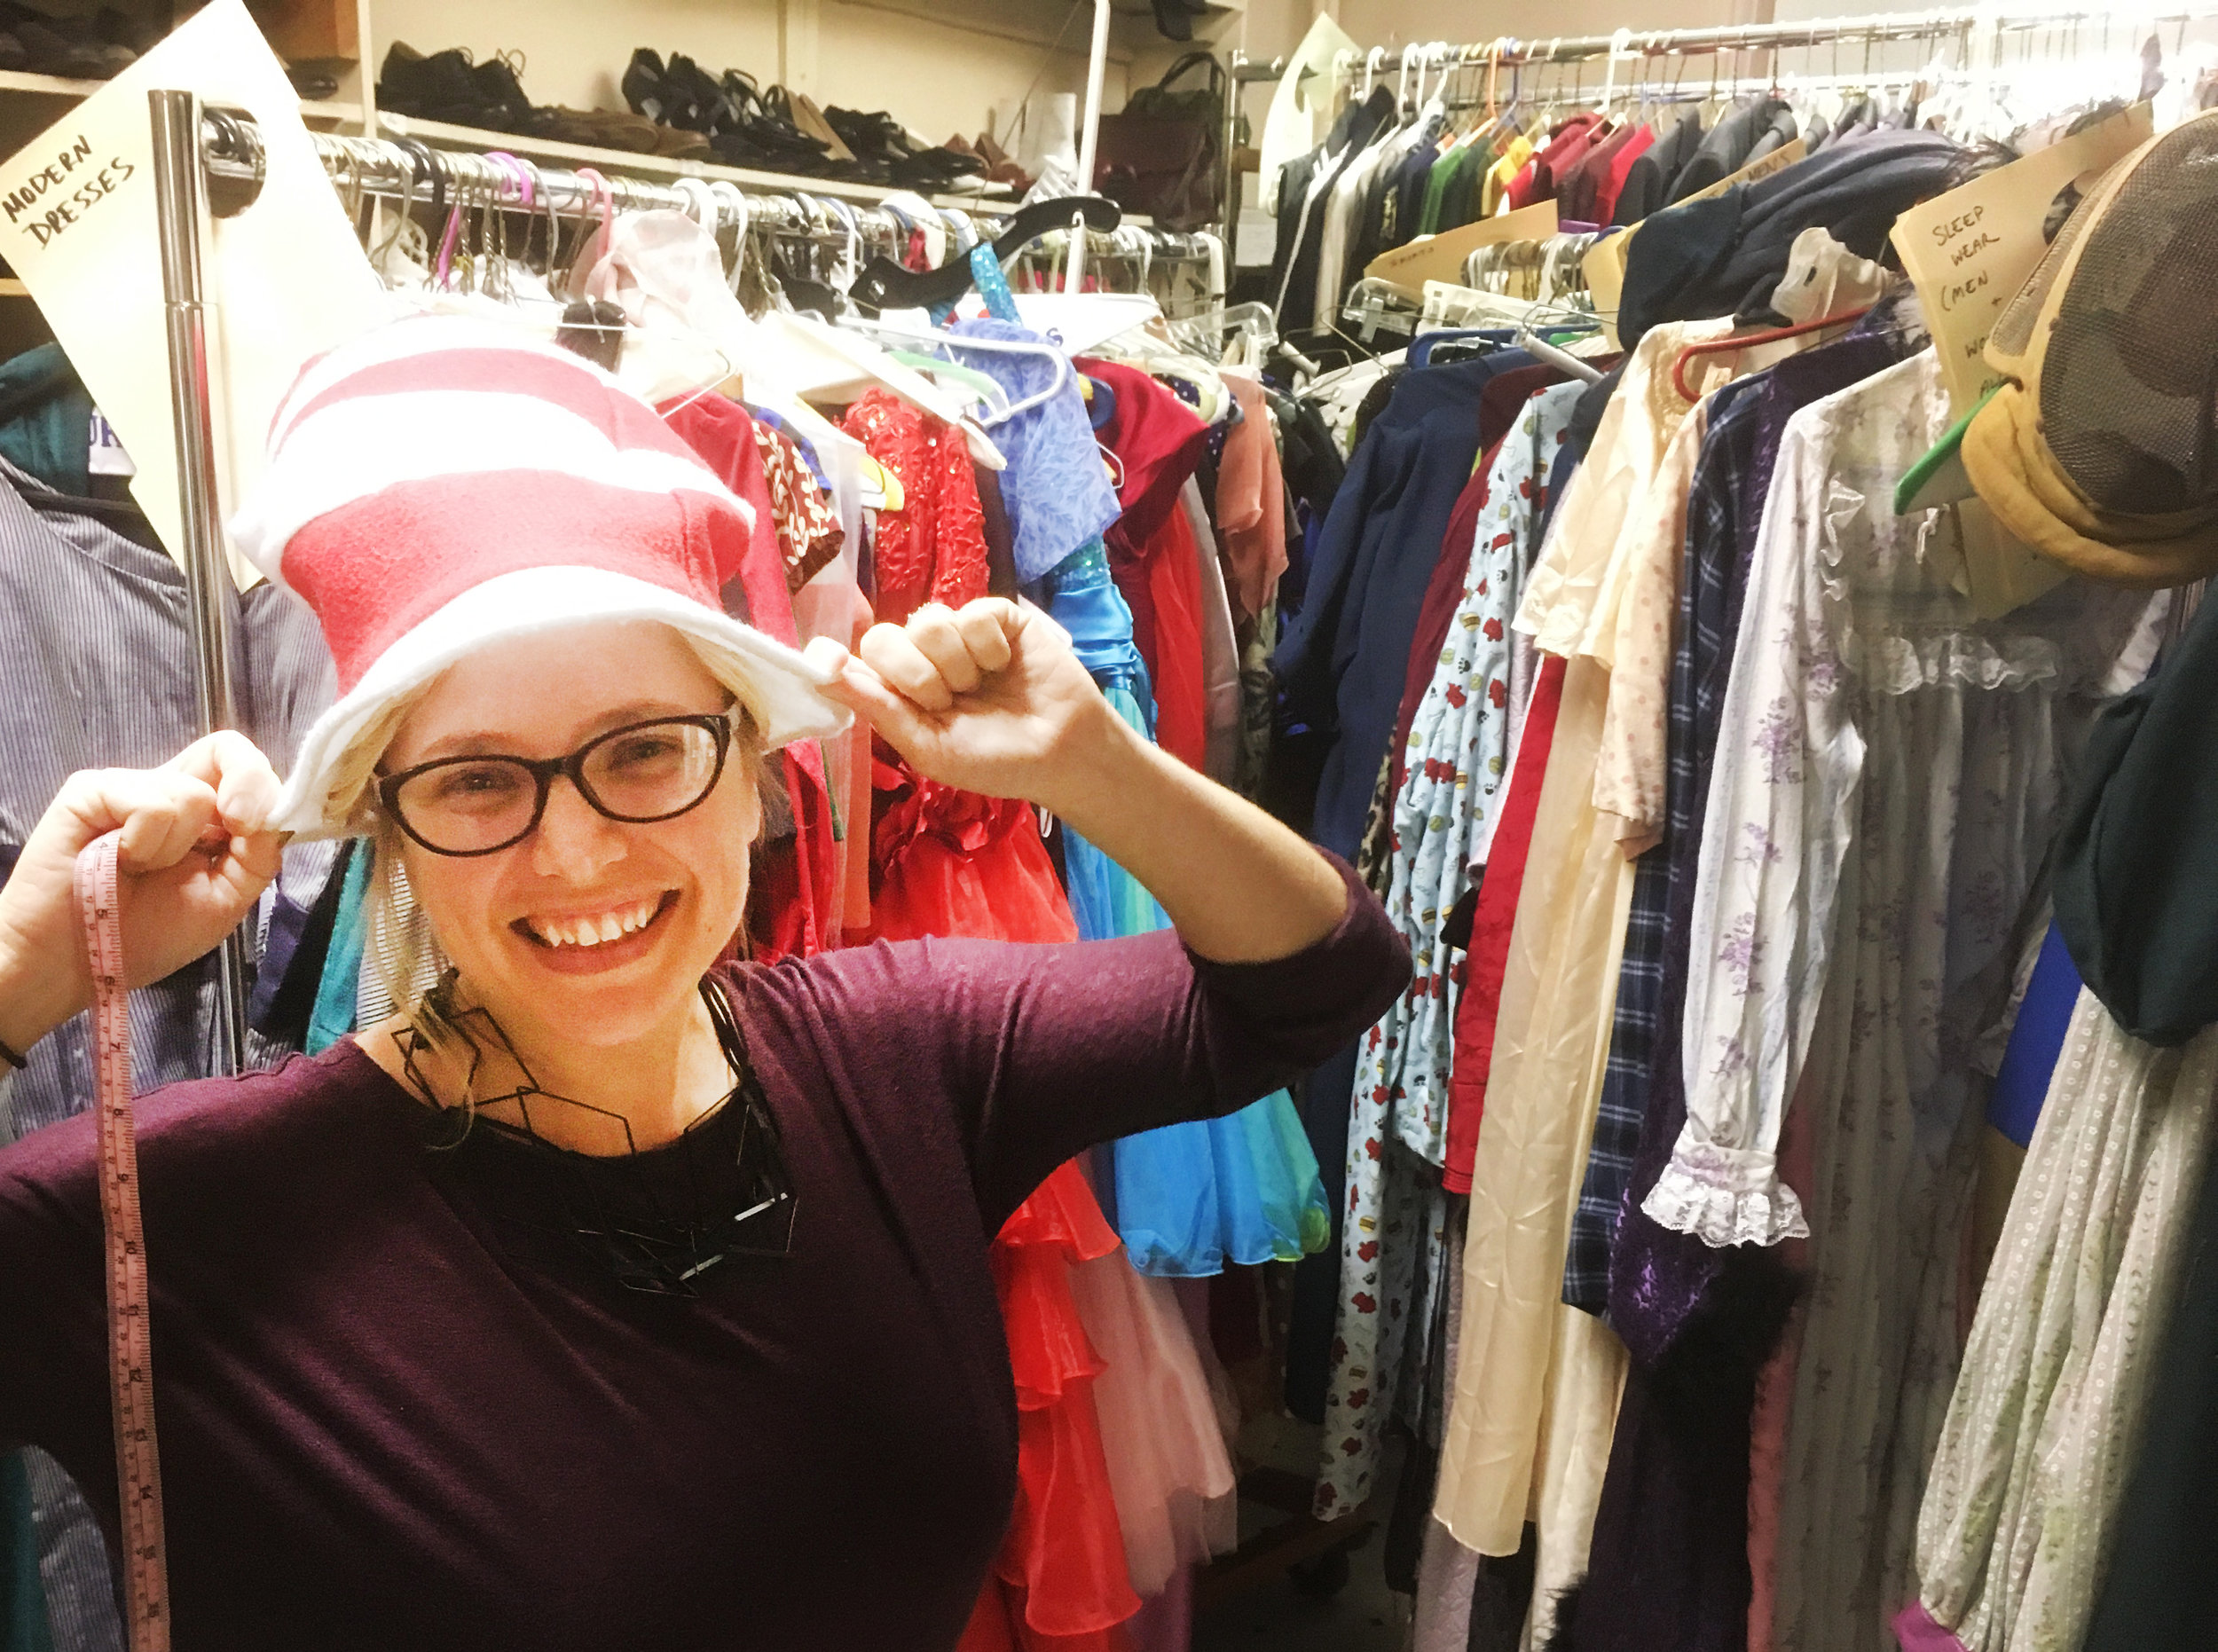 Jill Keys, costume designer for  This Is The Week That Is , making the rounds in 1812 Productions' costume storage.